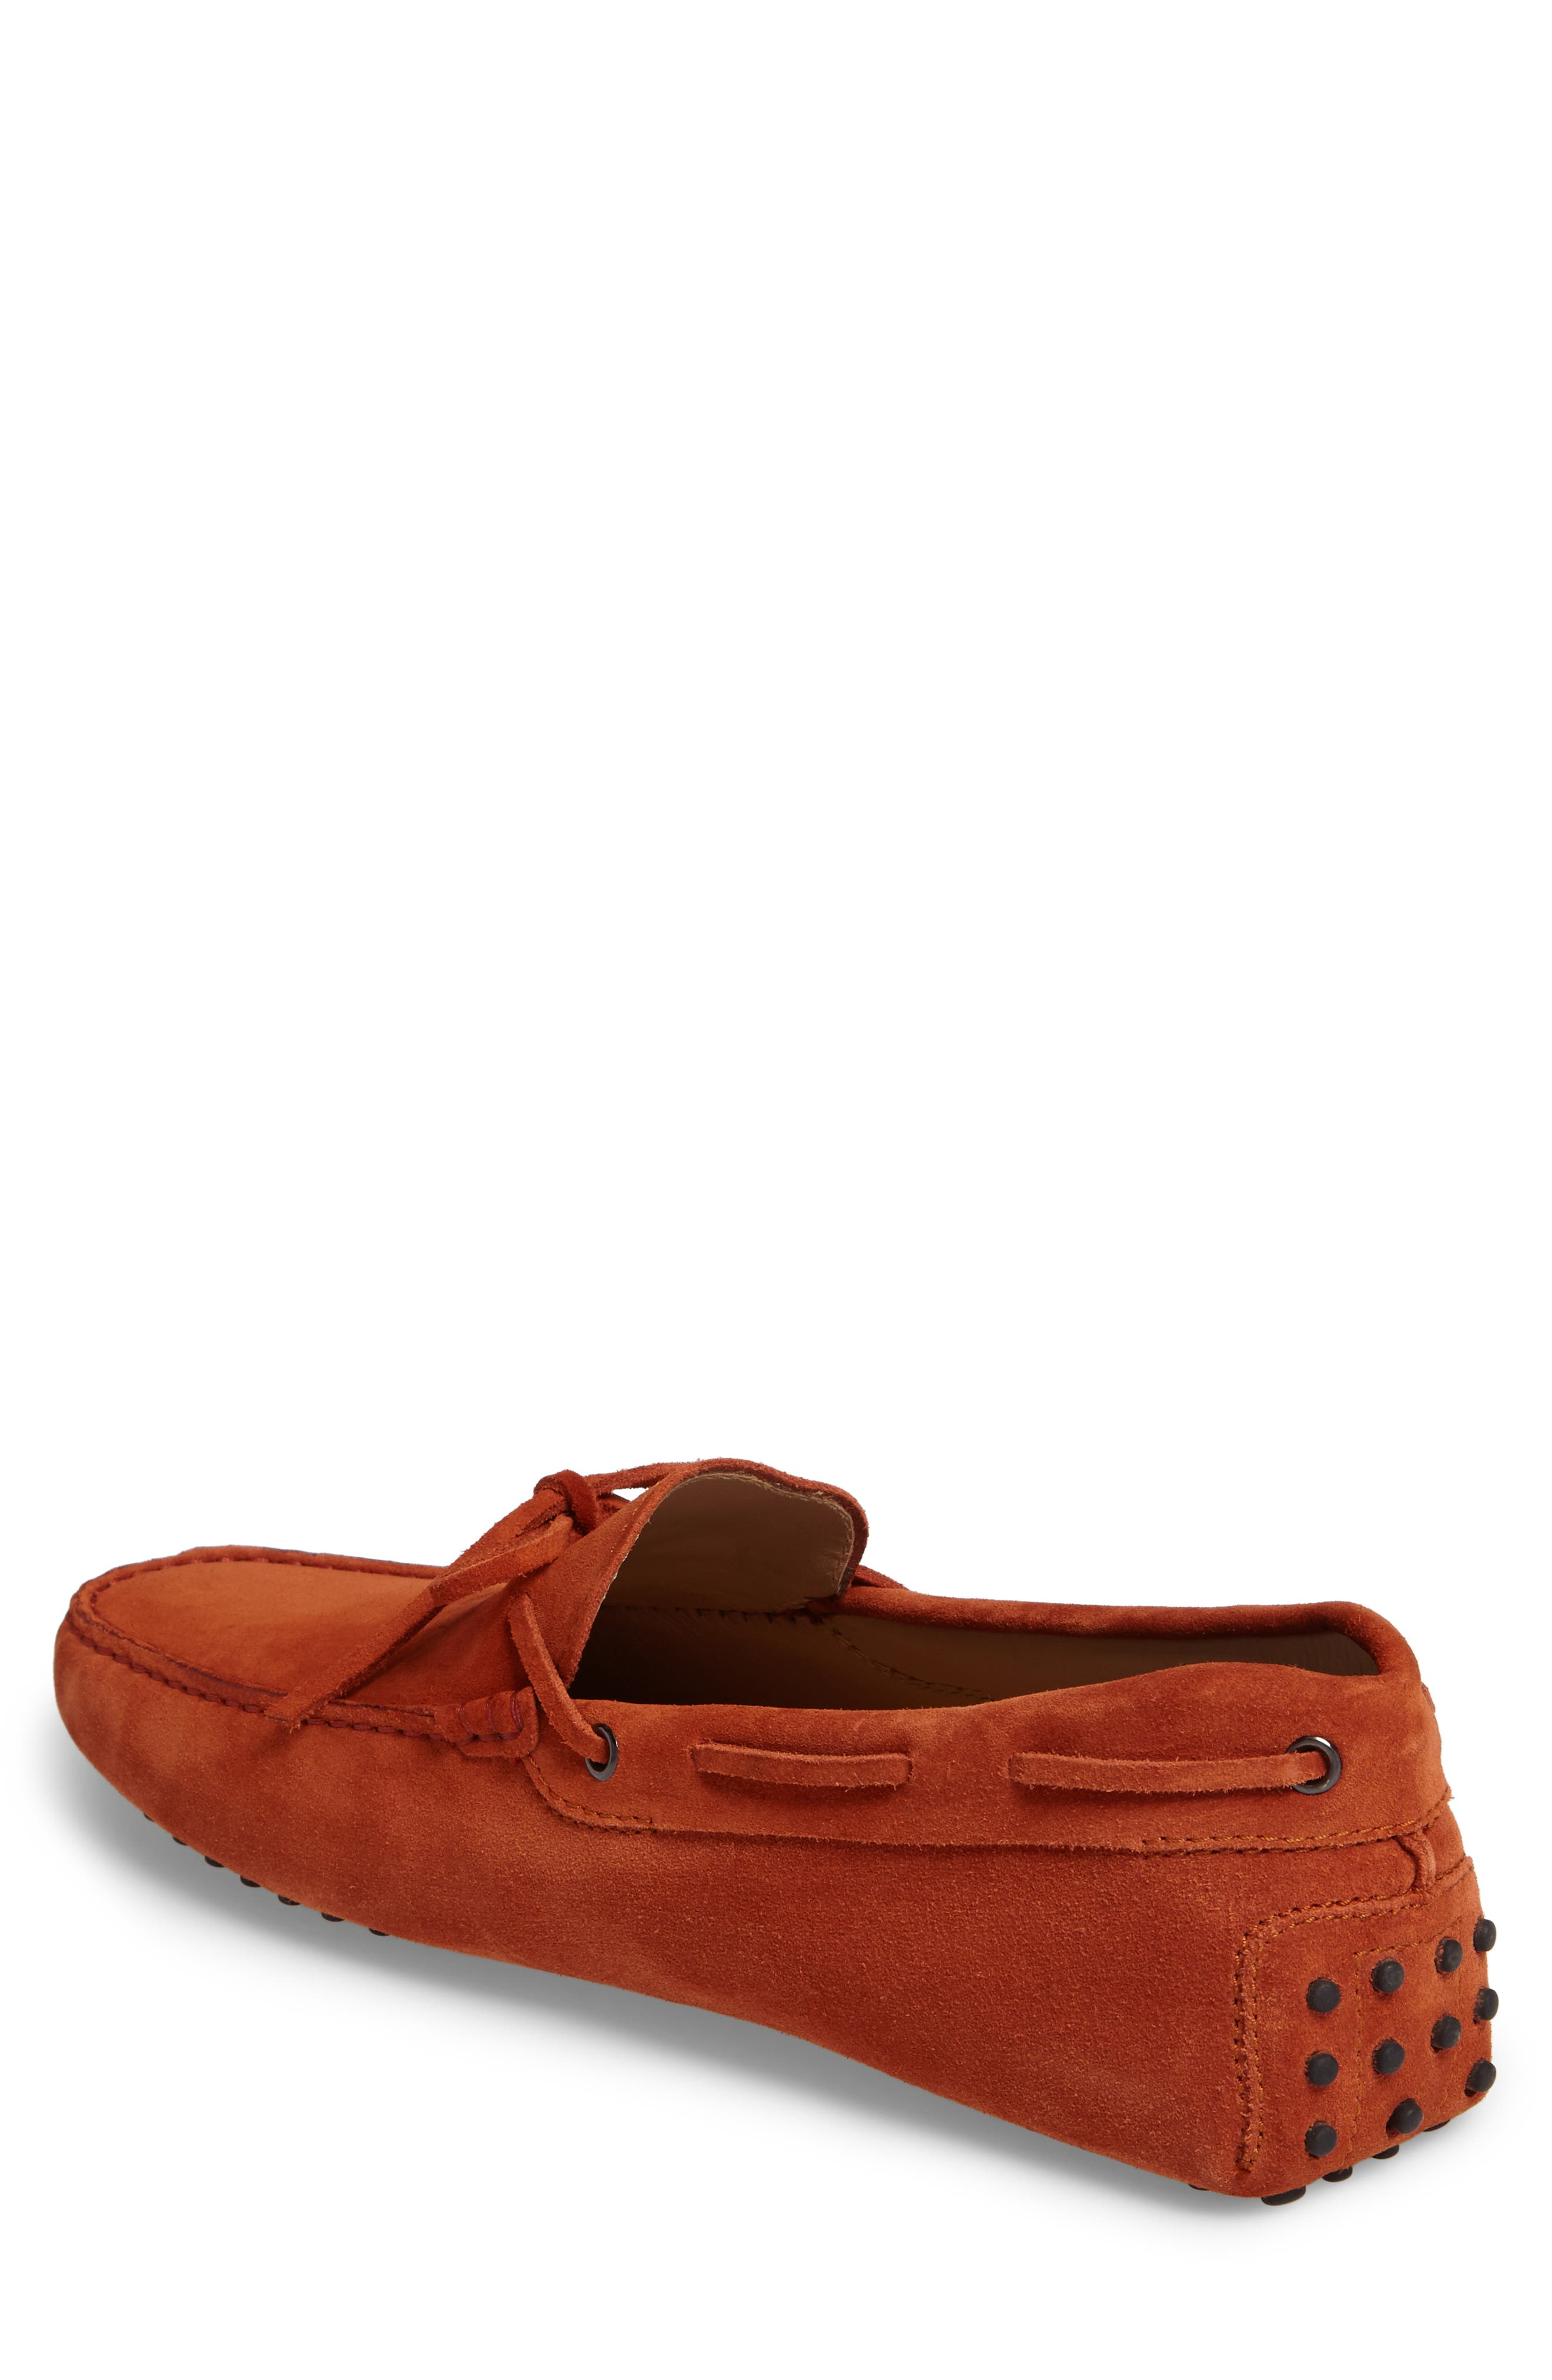 Gommini Tie Front Driving Moccasin,                             Alternate thumbnail 41, color,